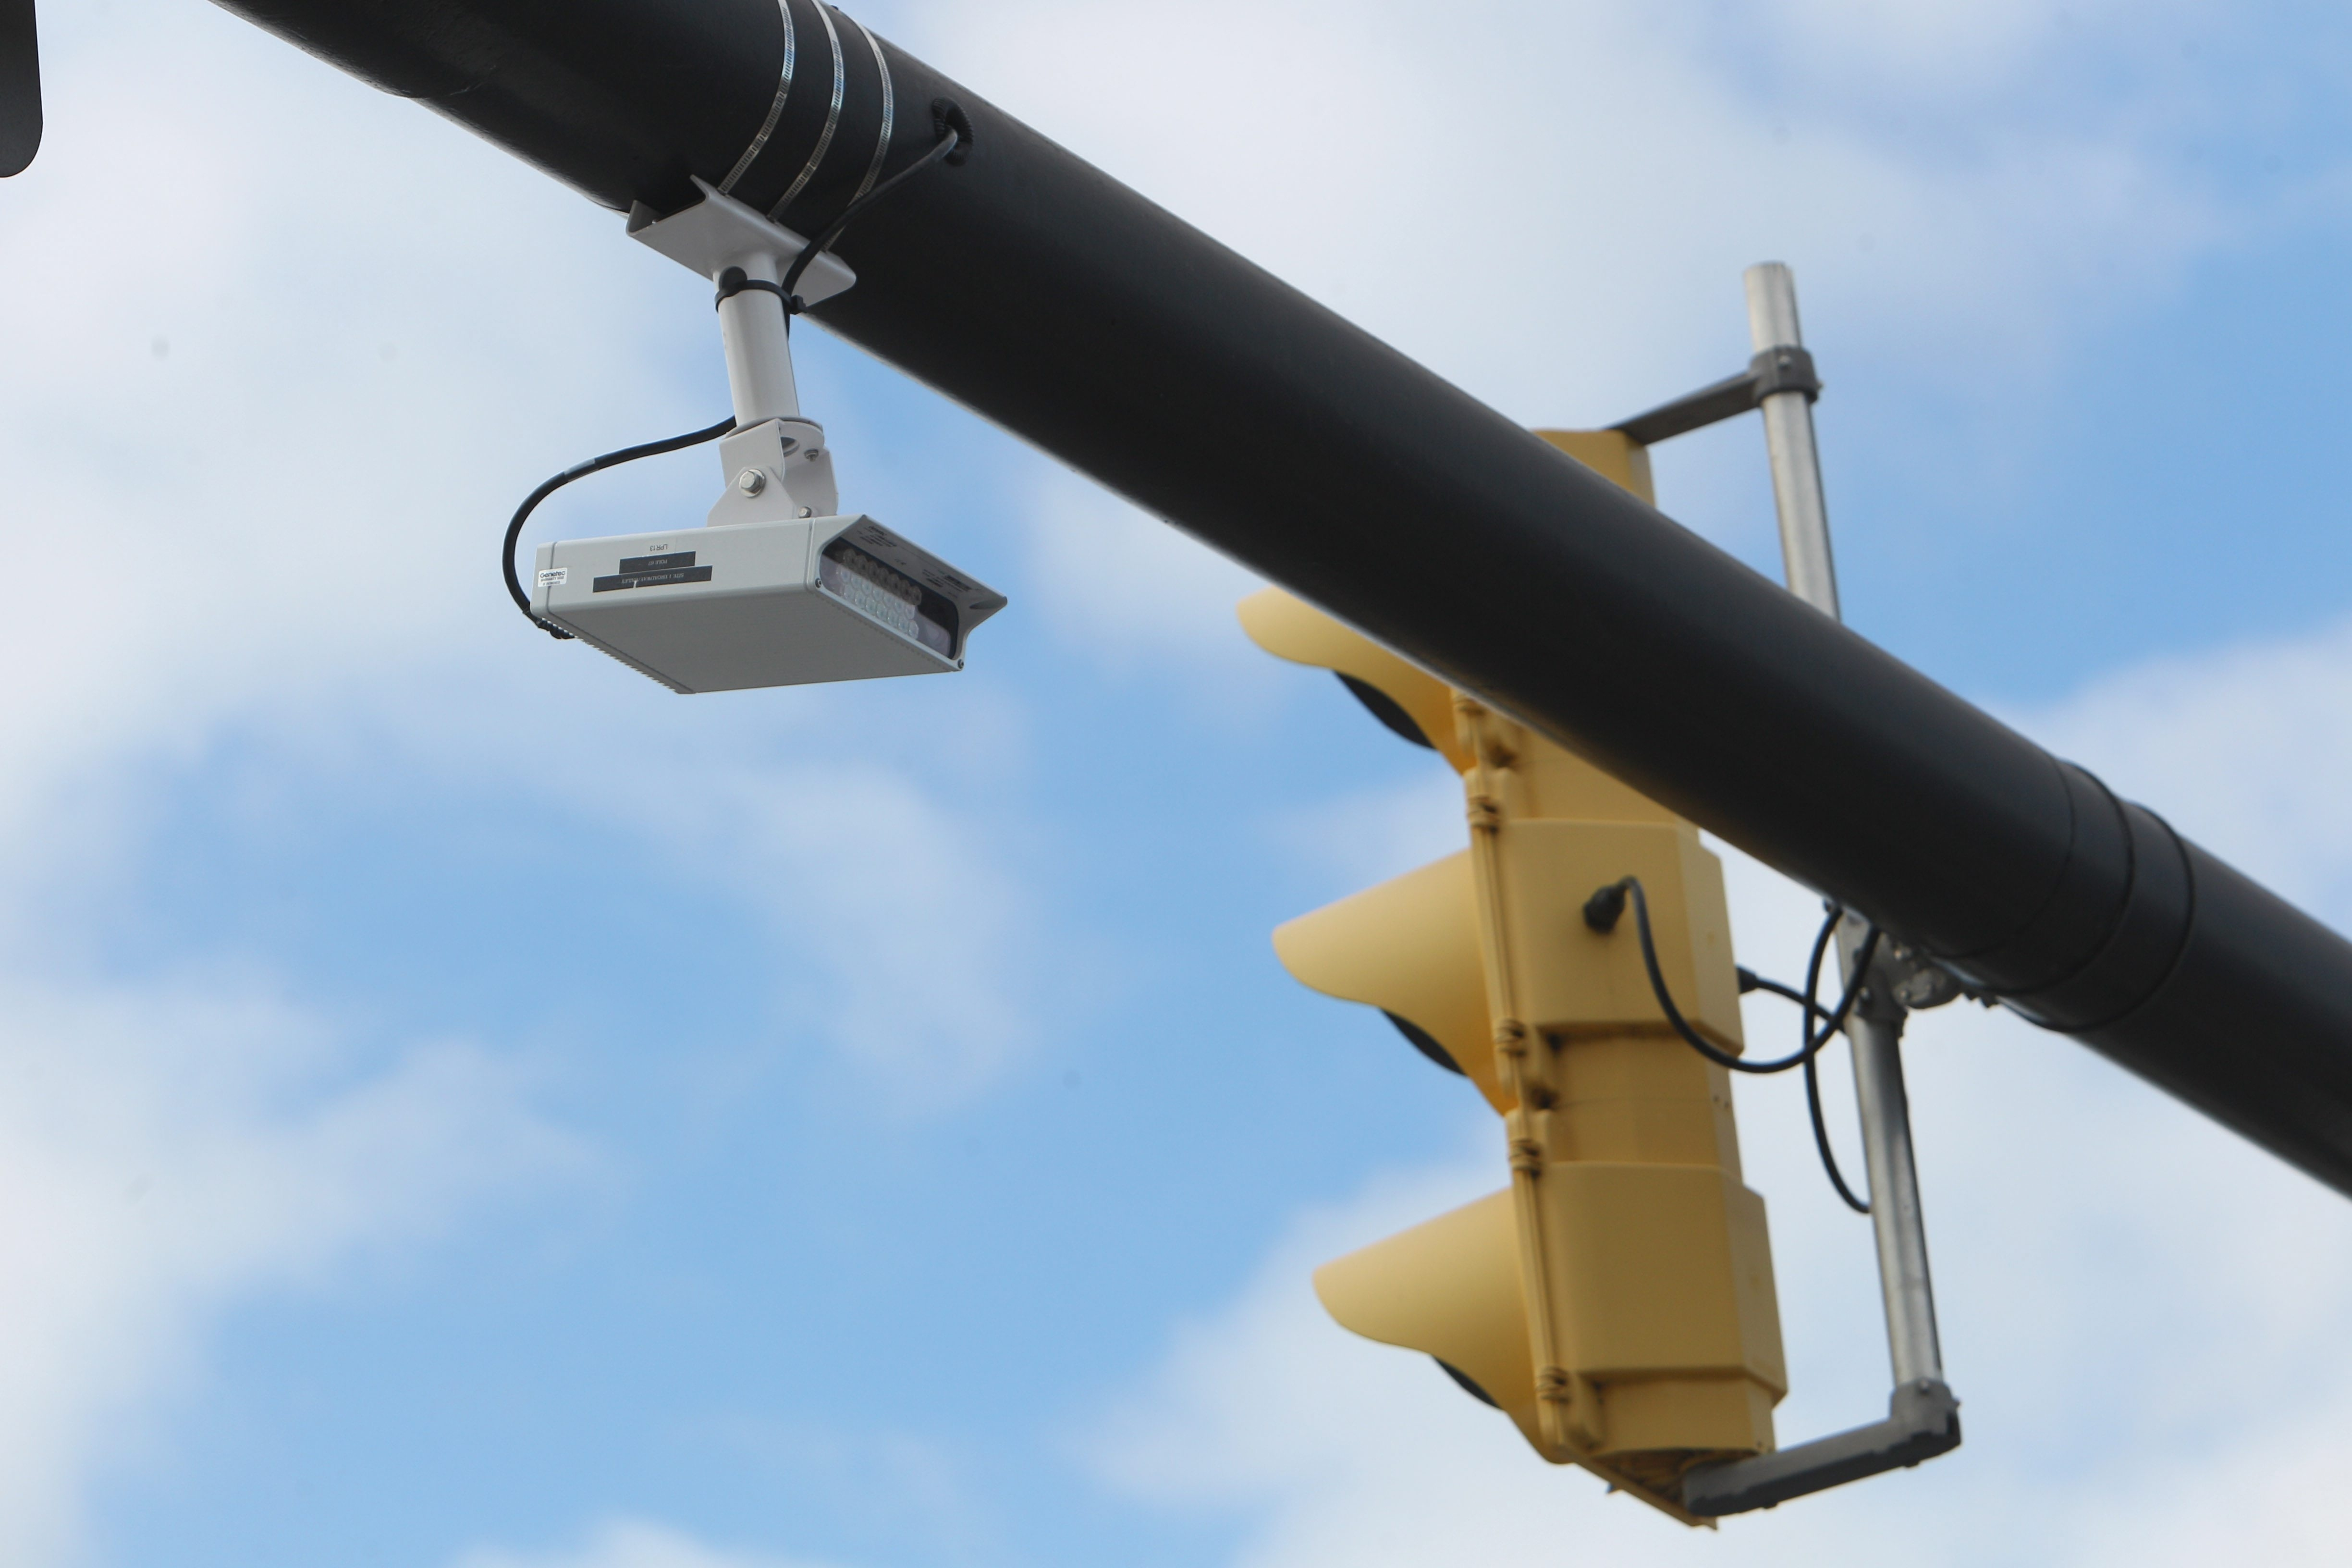 New crime-fighting equipment is at the intersection of Broadway and Bailey Avenue.